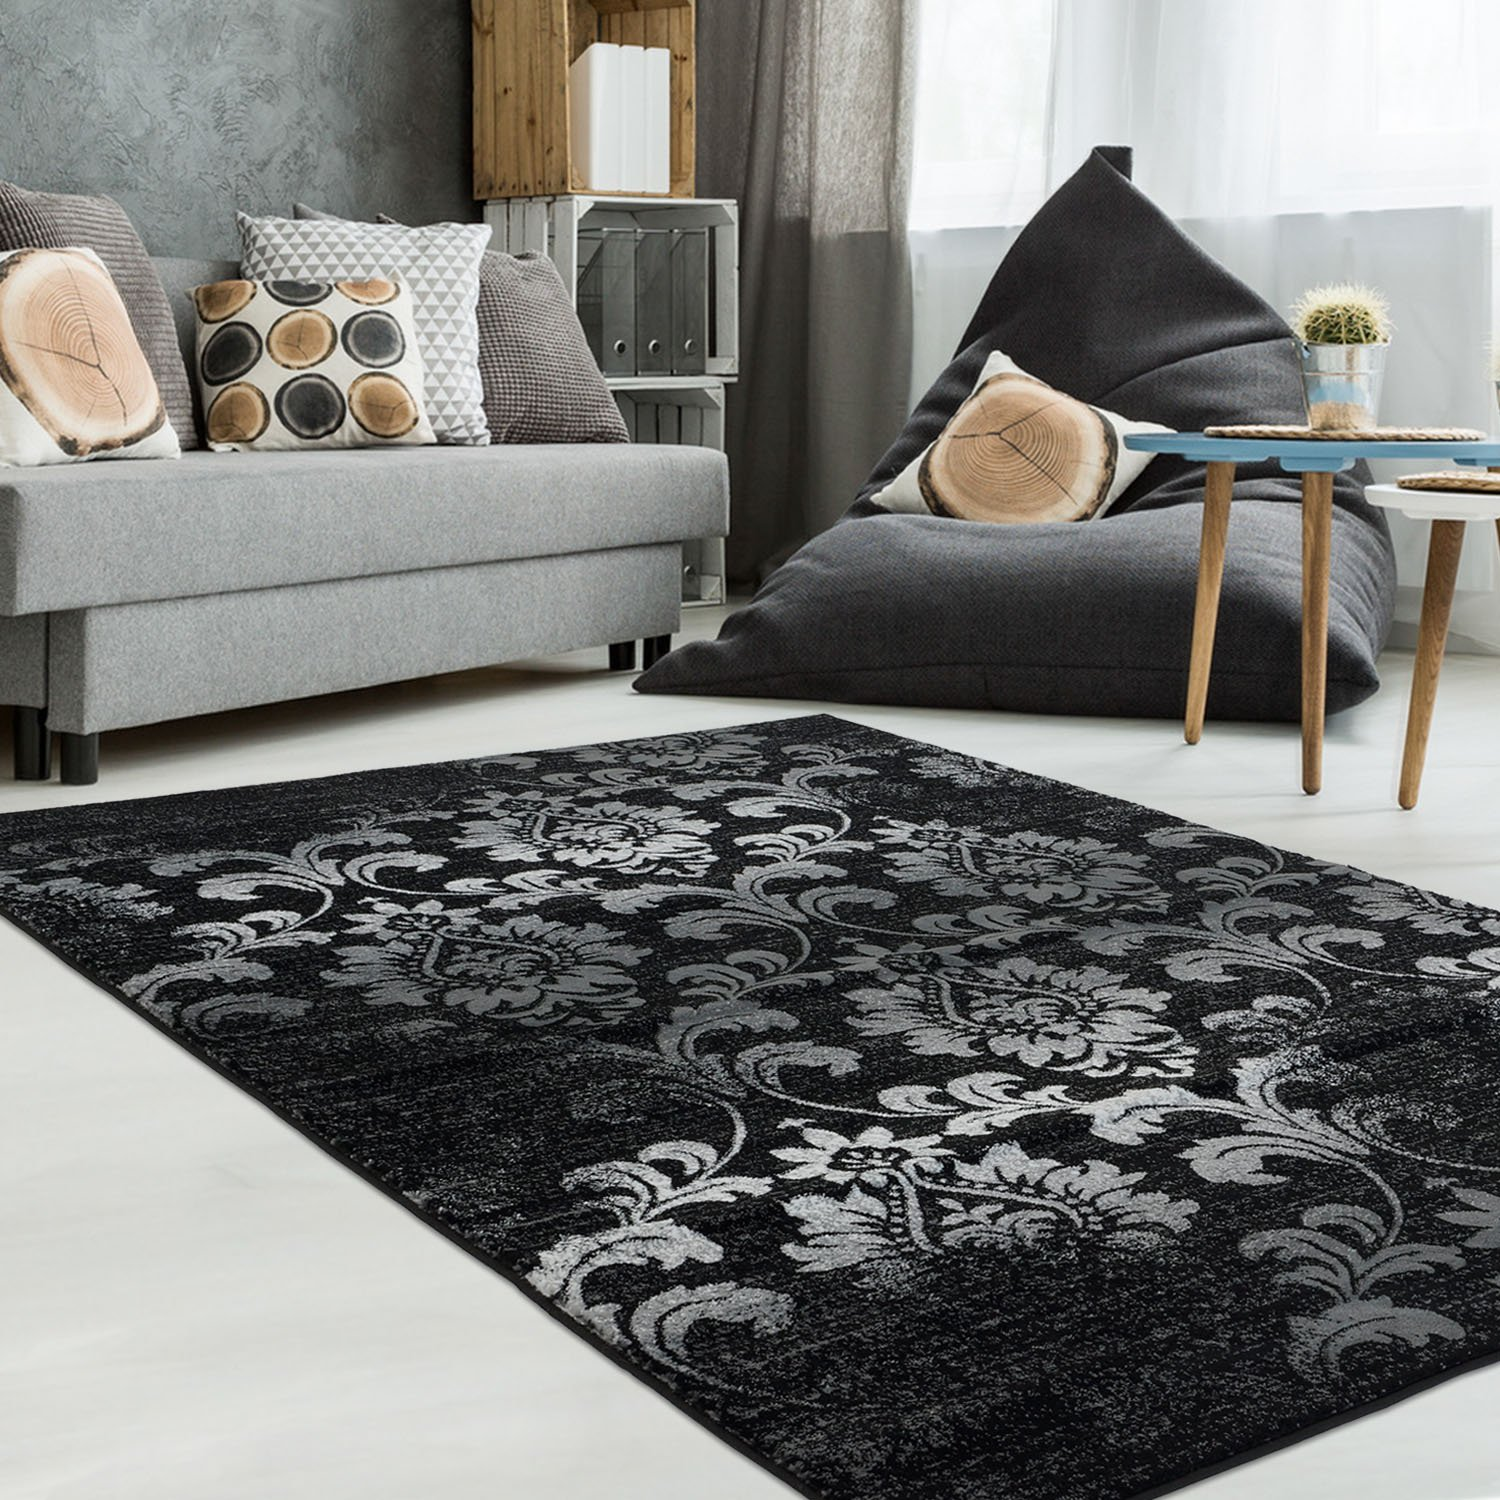 Ladole Rugs Black Grey Stylish Floral Modern Soft Beatuiful Area Rug Carpet, 8x11